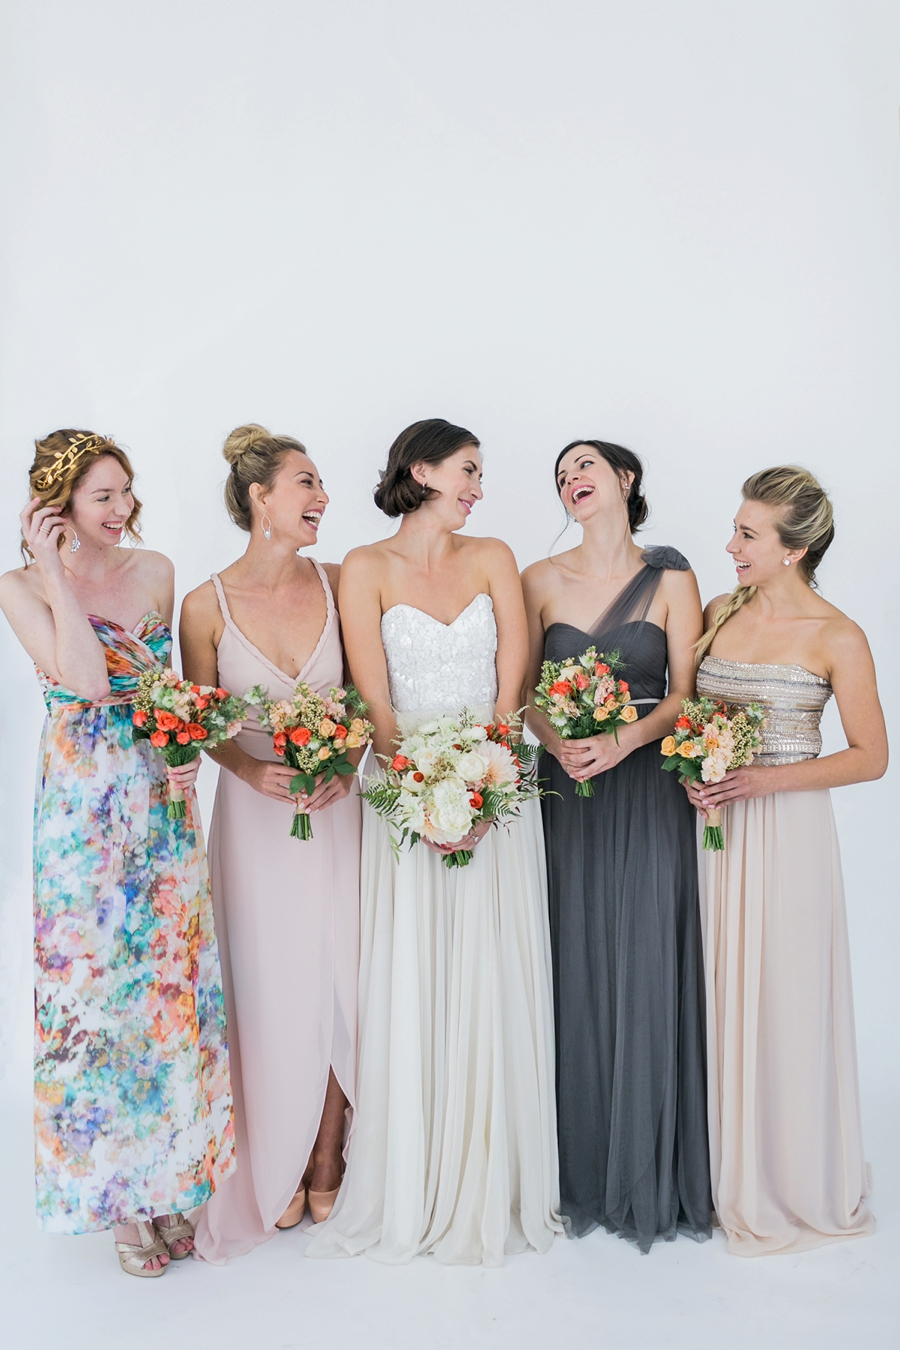 Modern & Romantic Wedding Ideas Inspired By Aisle Society via TheELD.com